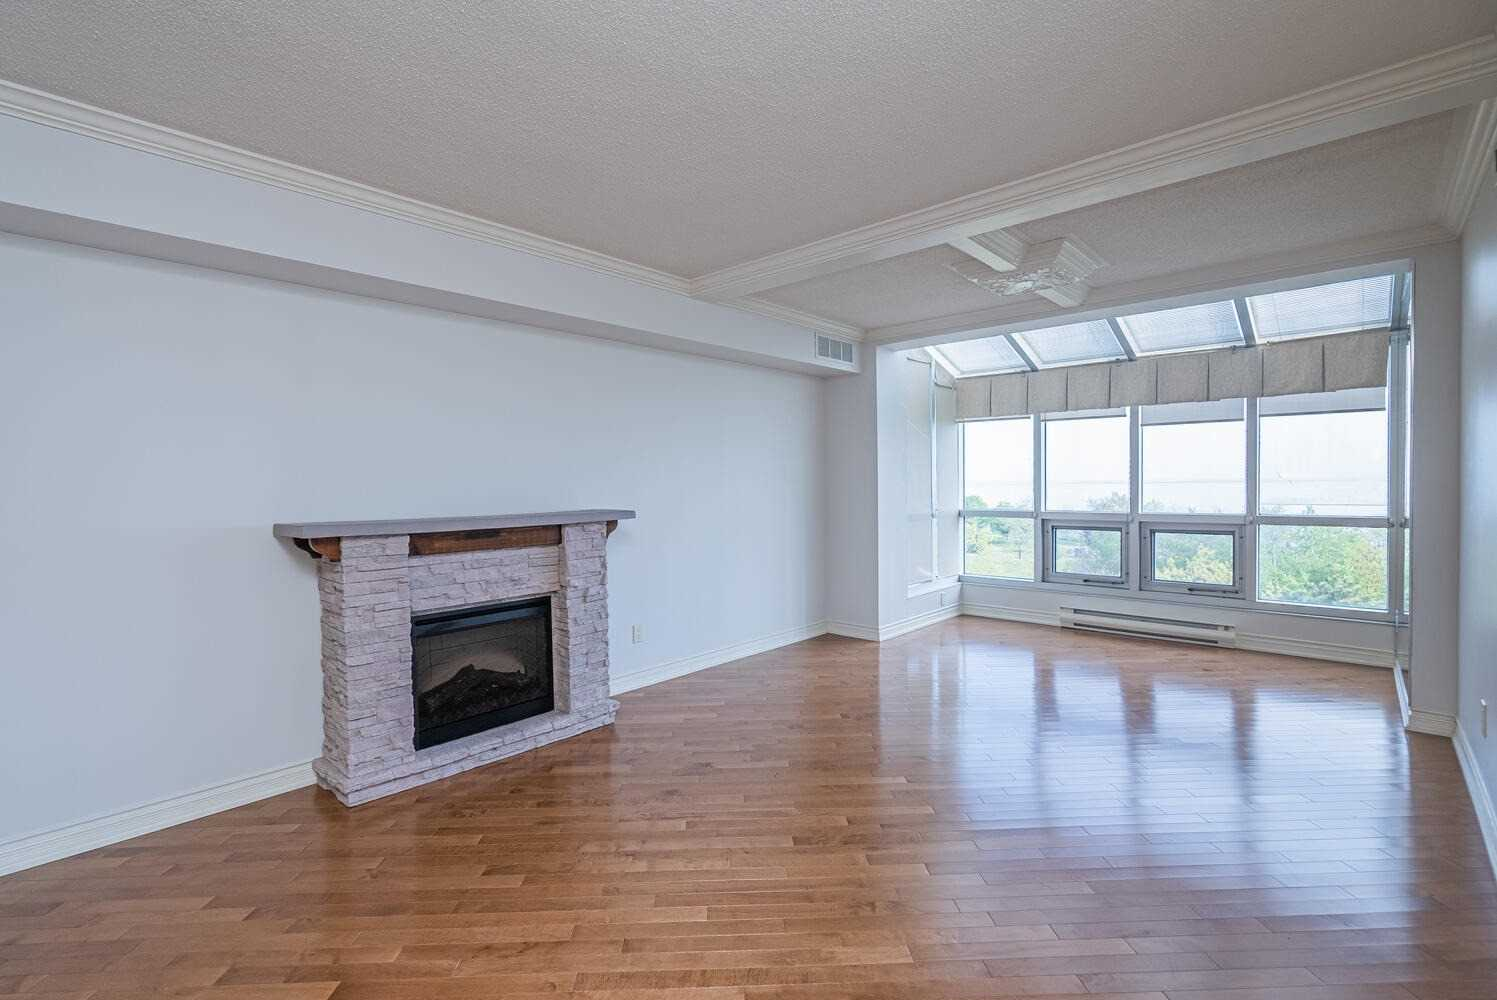 Image 7 of 38 showing inside of 2 Bedroom Condo Apt Apartment for Sale at 70 Cumberland Lane Unit# 503, Ajax L1S7K4